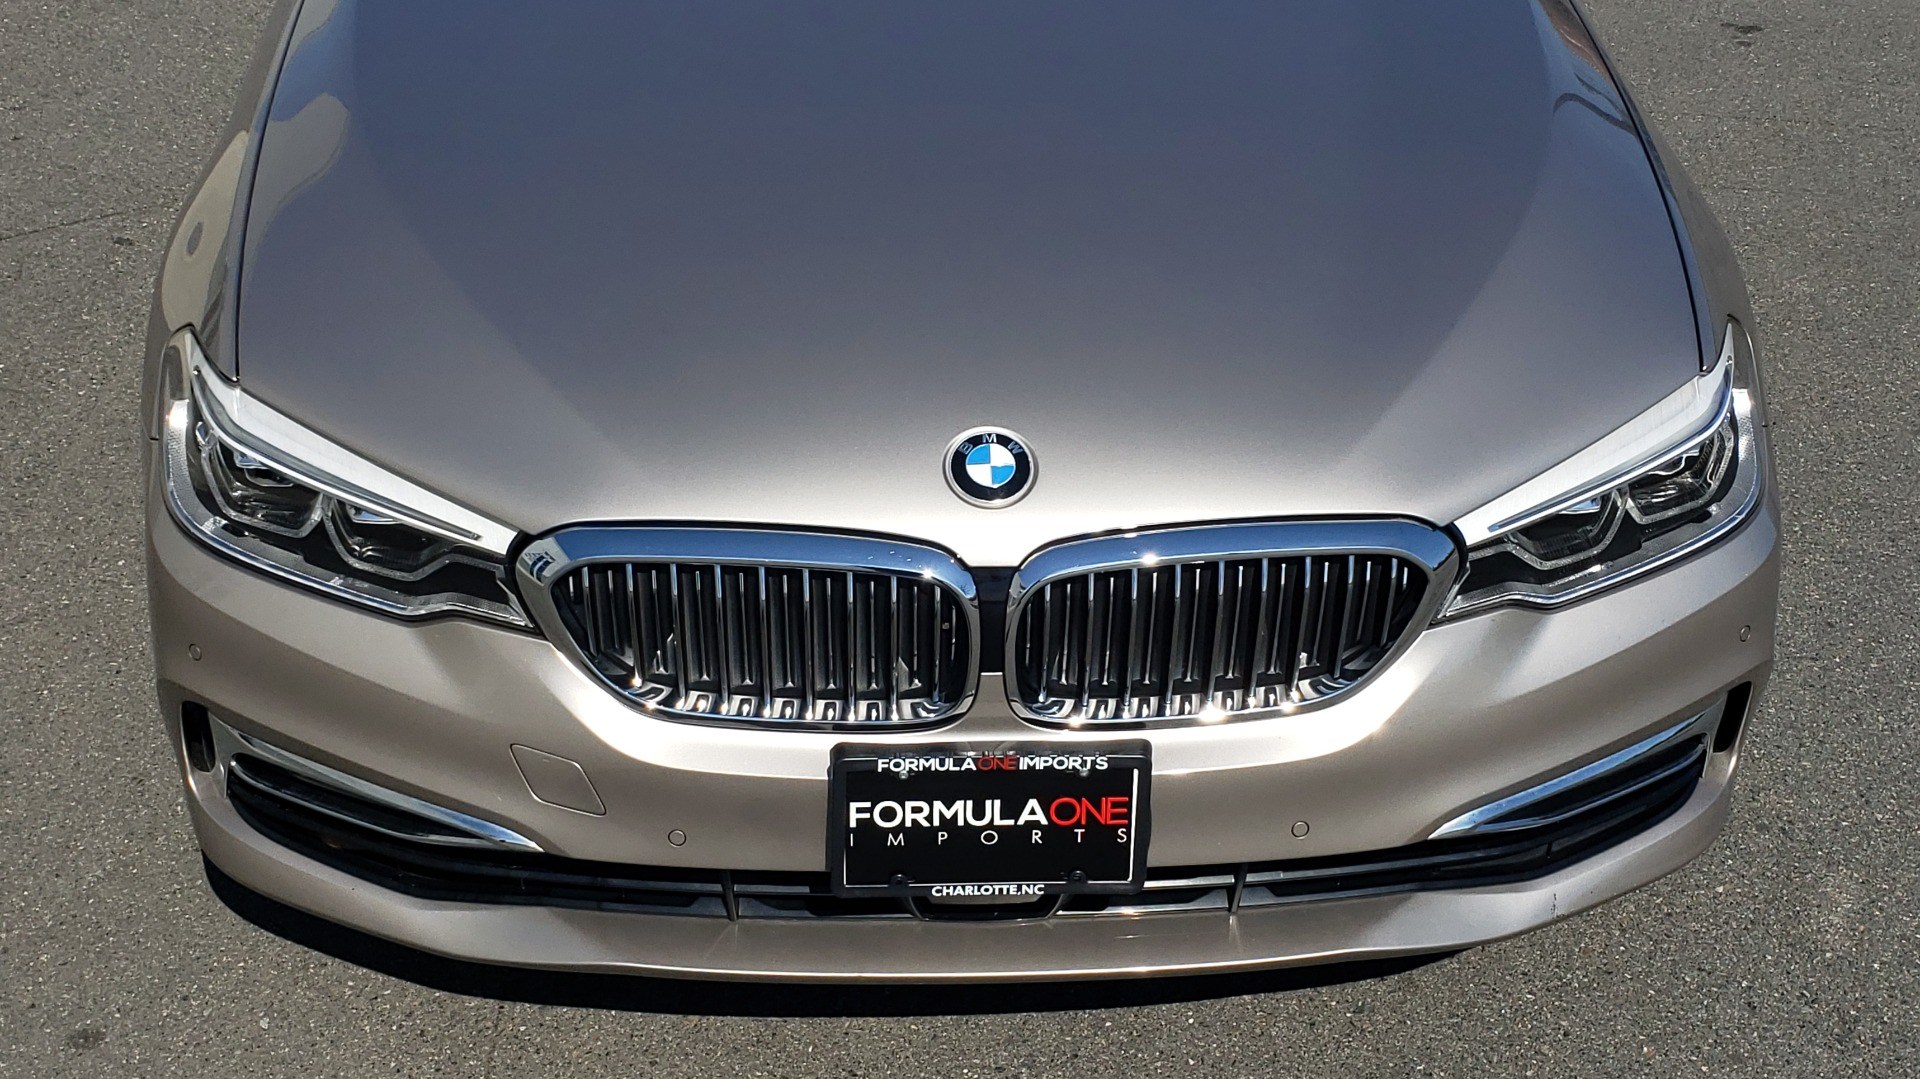 Used 2018 BMW 5 SERIES 540IXDRIVE PREMIUM / DRVR ASST PLUS / LUX PKG / APPLE CARPLAY for sale Sold at Formula Imports in Charlotte NC 28227 19